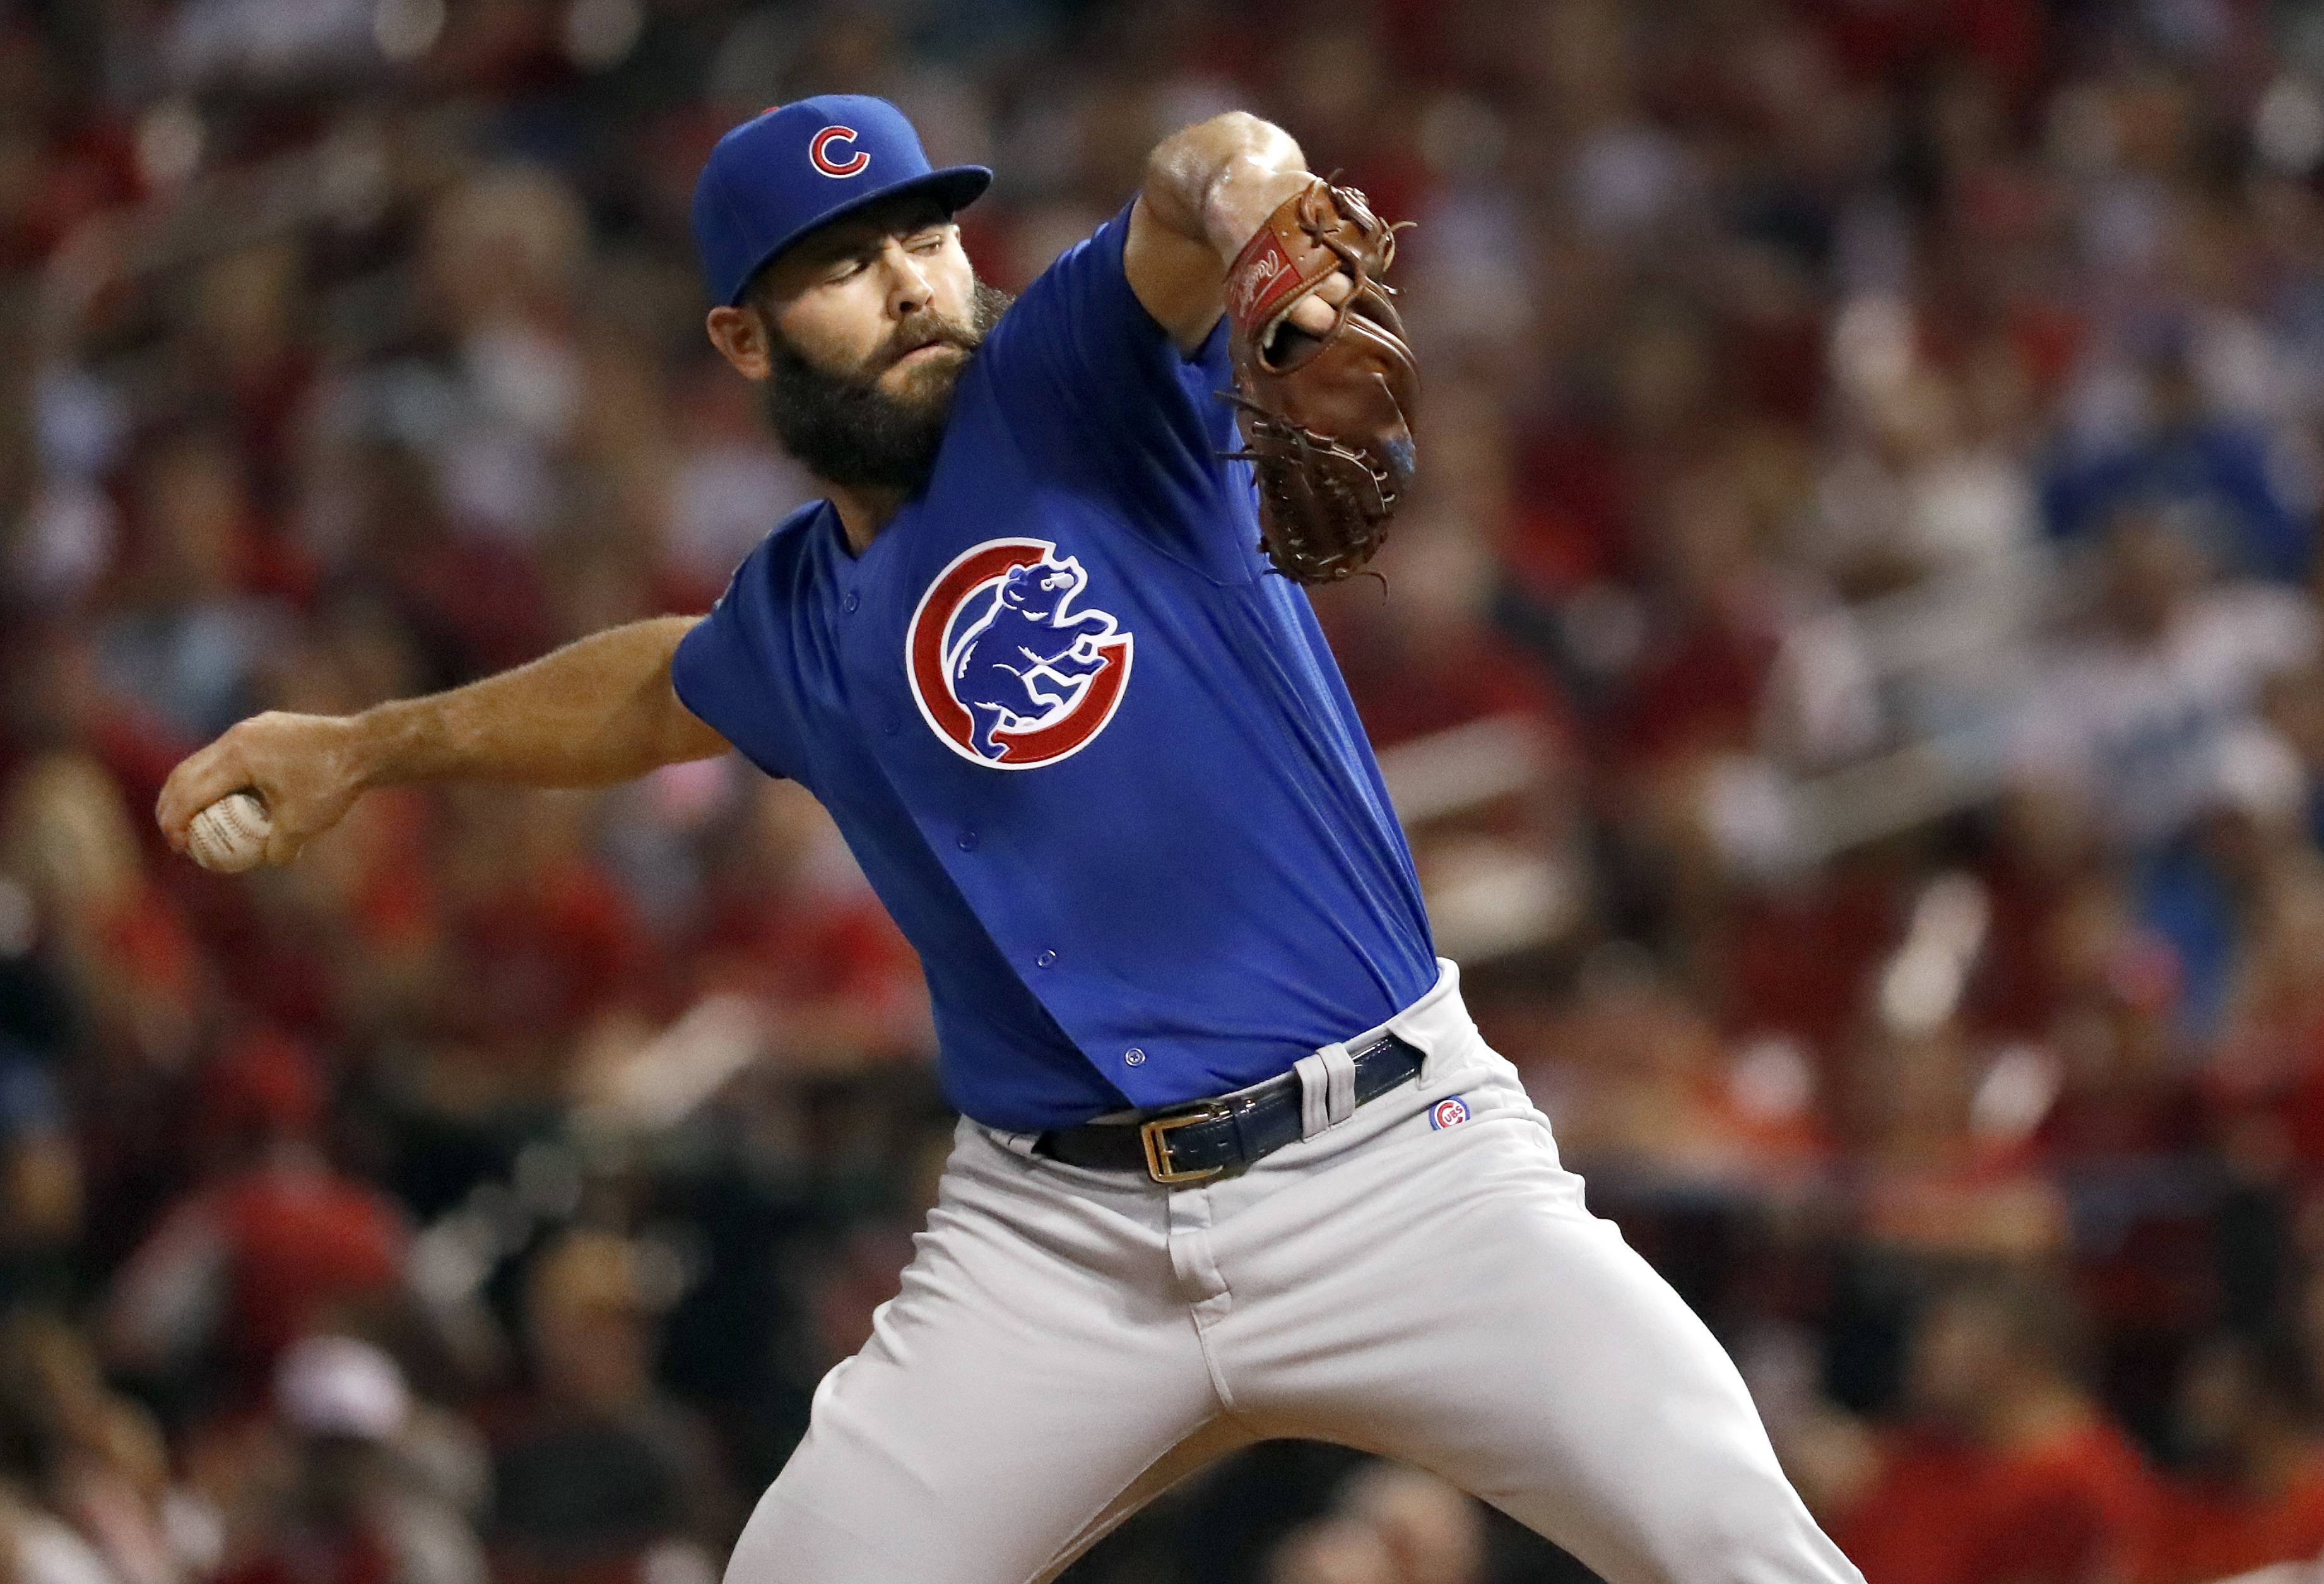 Arrieta won't pitch Sunday, Montgomery to go instead